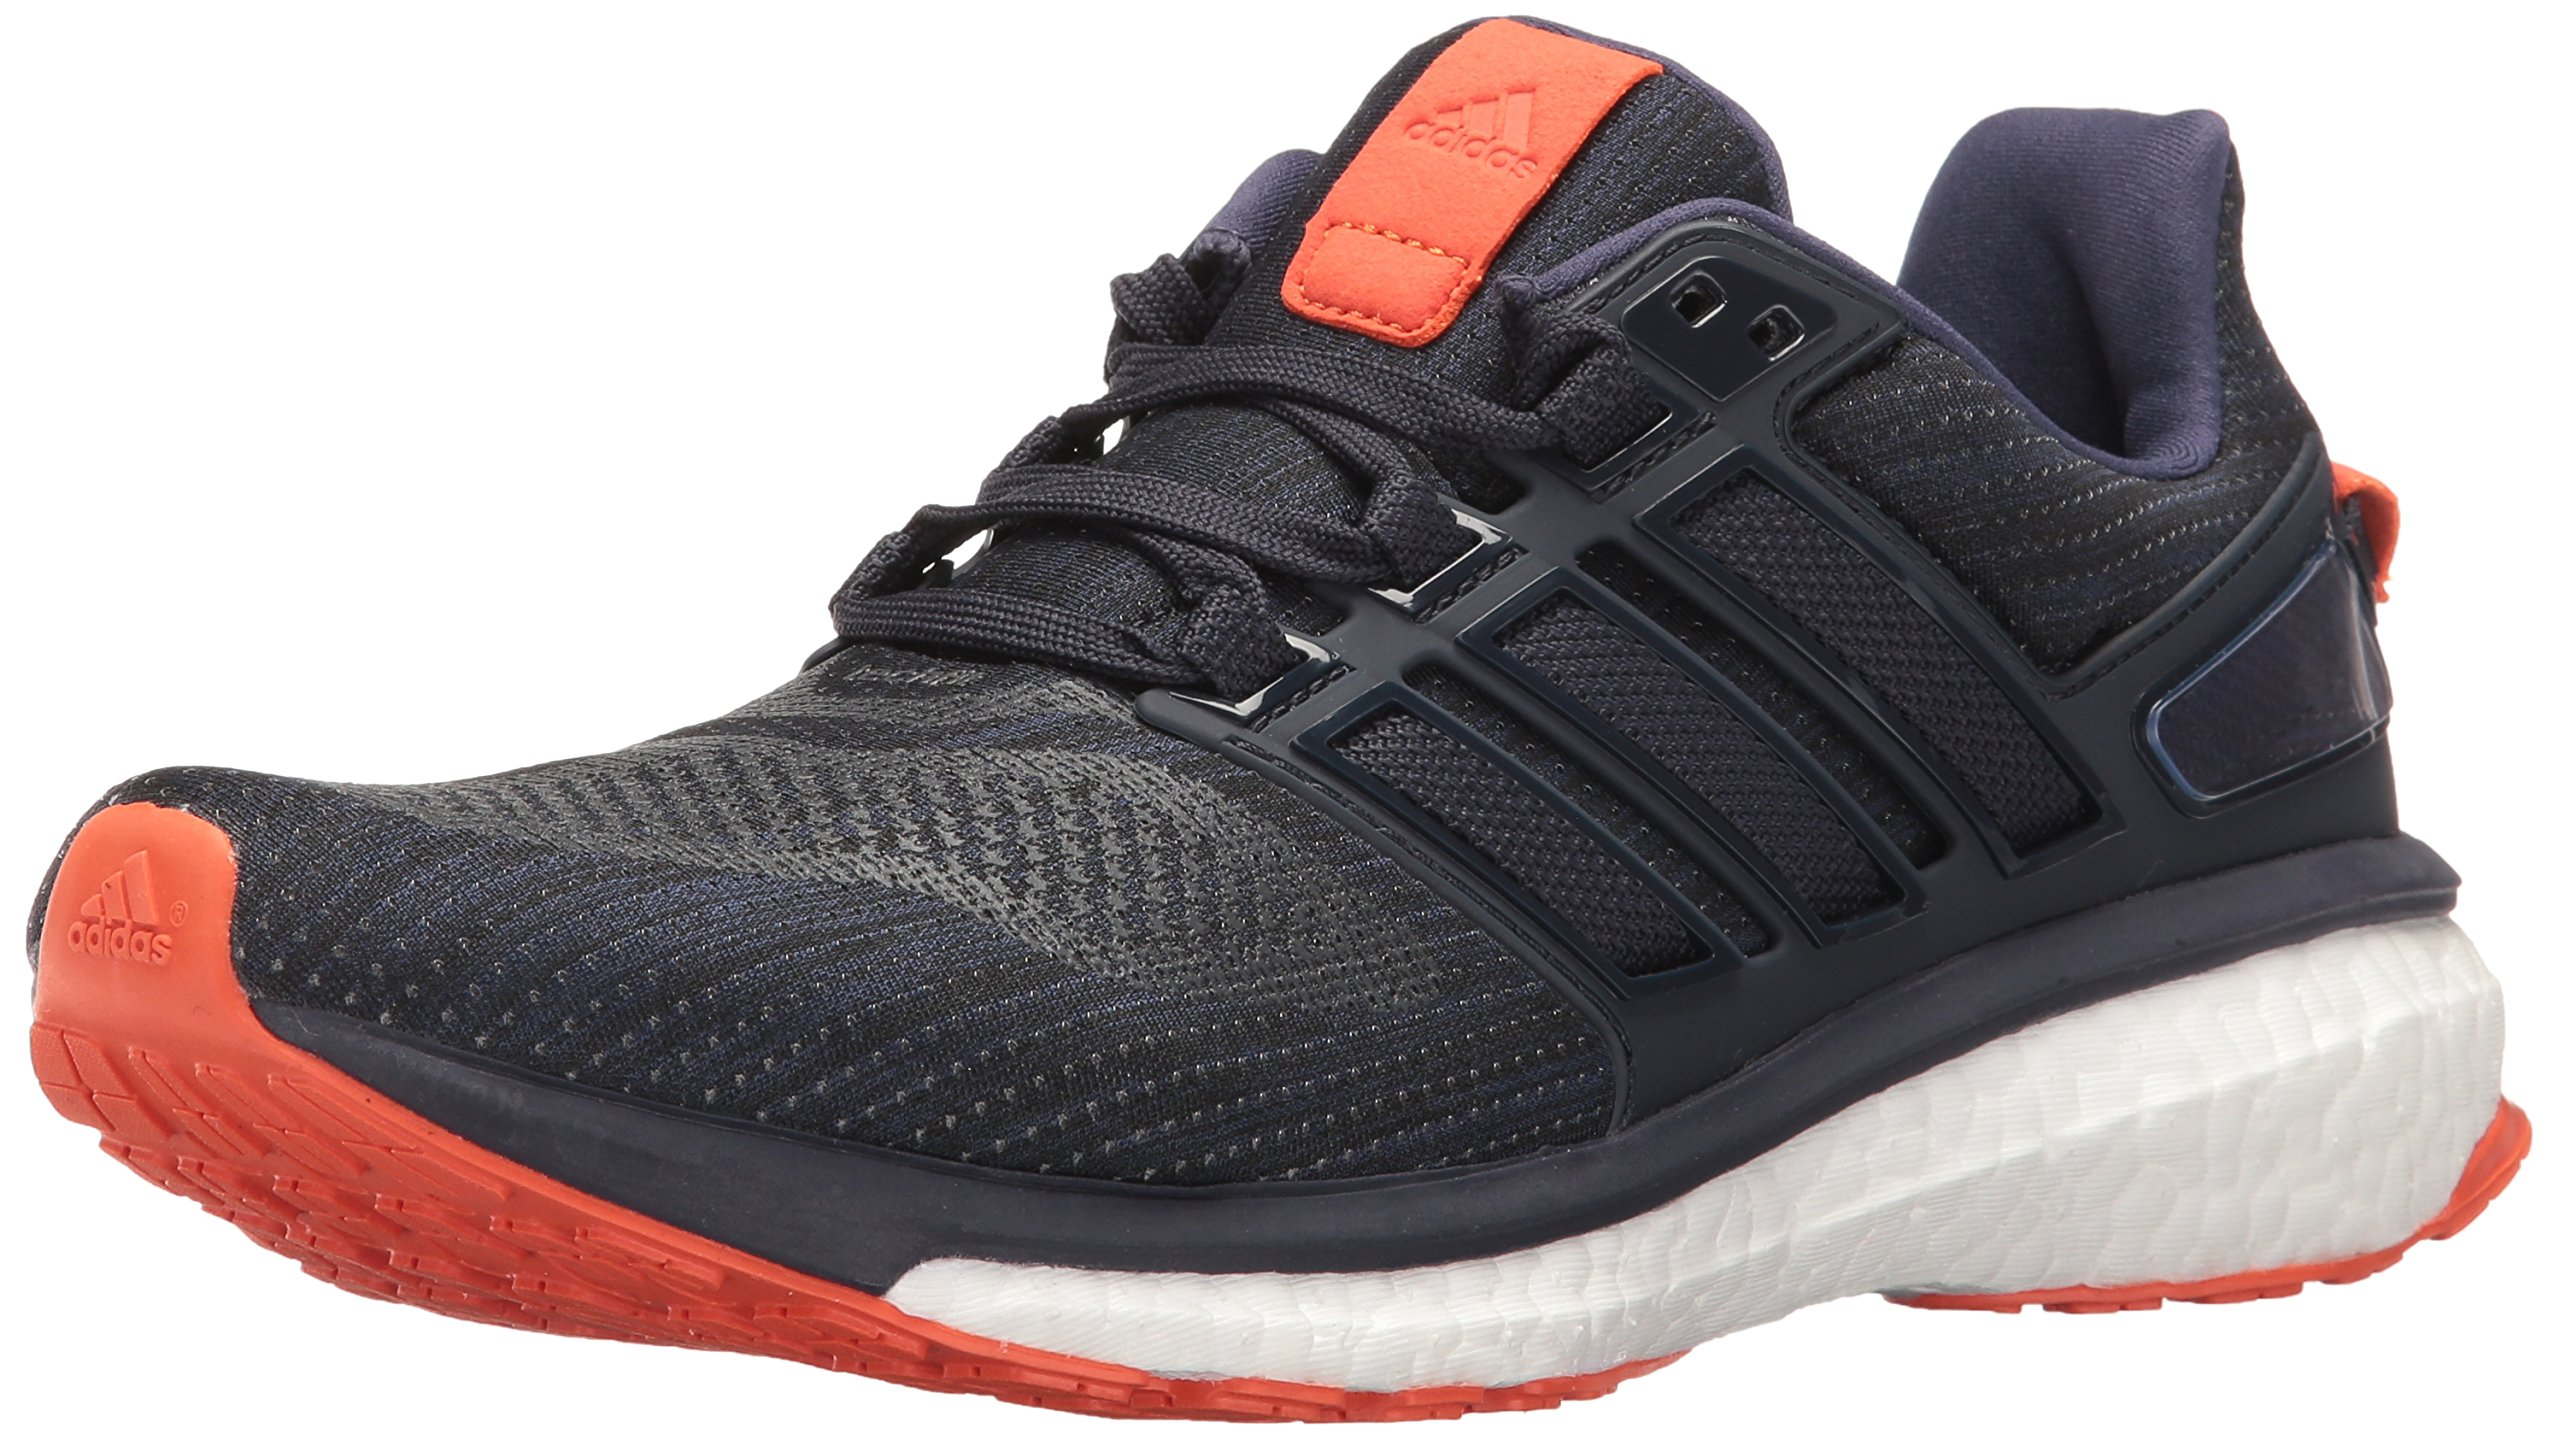 reasonable price new arrive later Galleon - Adidas Men's Boost 3 M Running Shoe, Navy/Mid ...